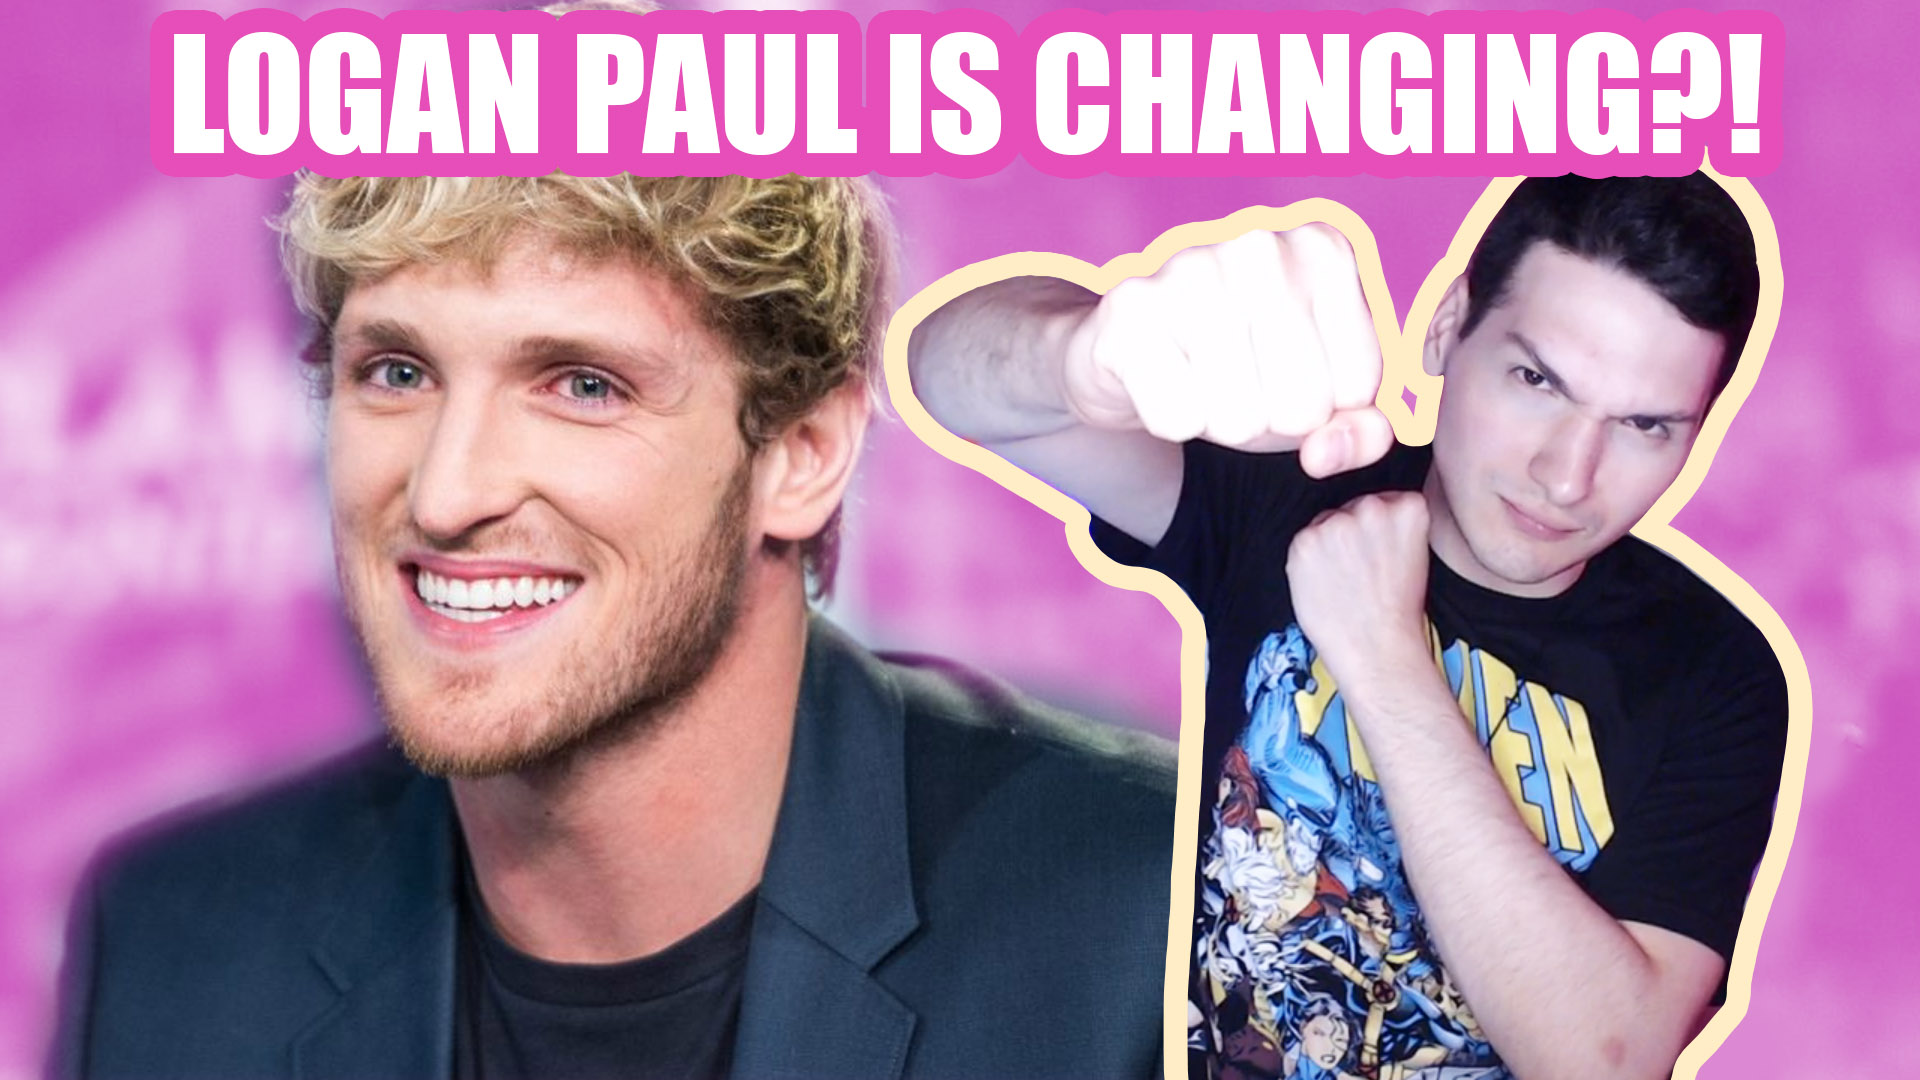 Logan paul is changing